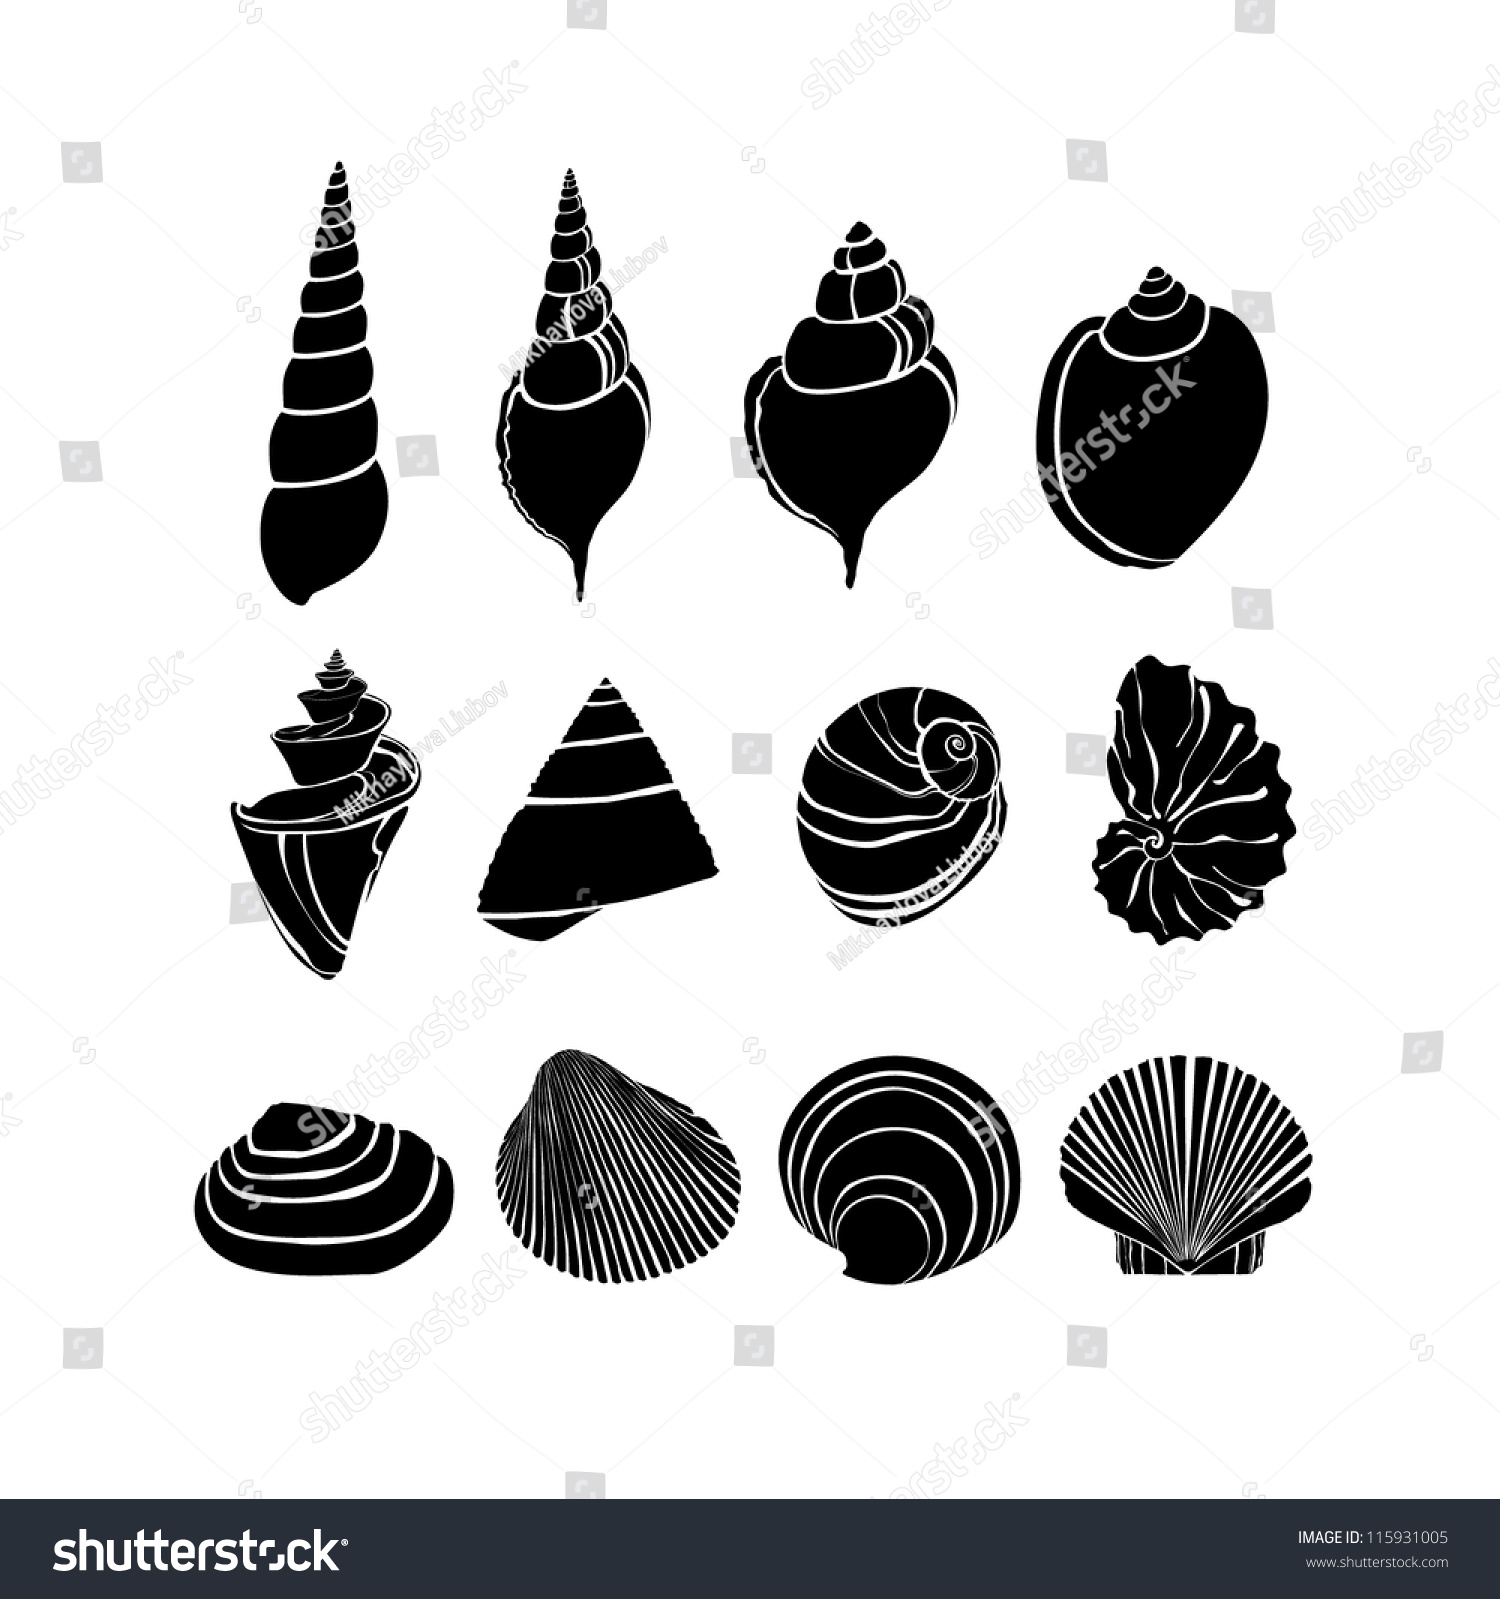 Set With Silhouettes Seashells Stock Vector Illustration ...